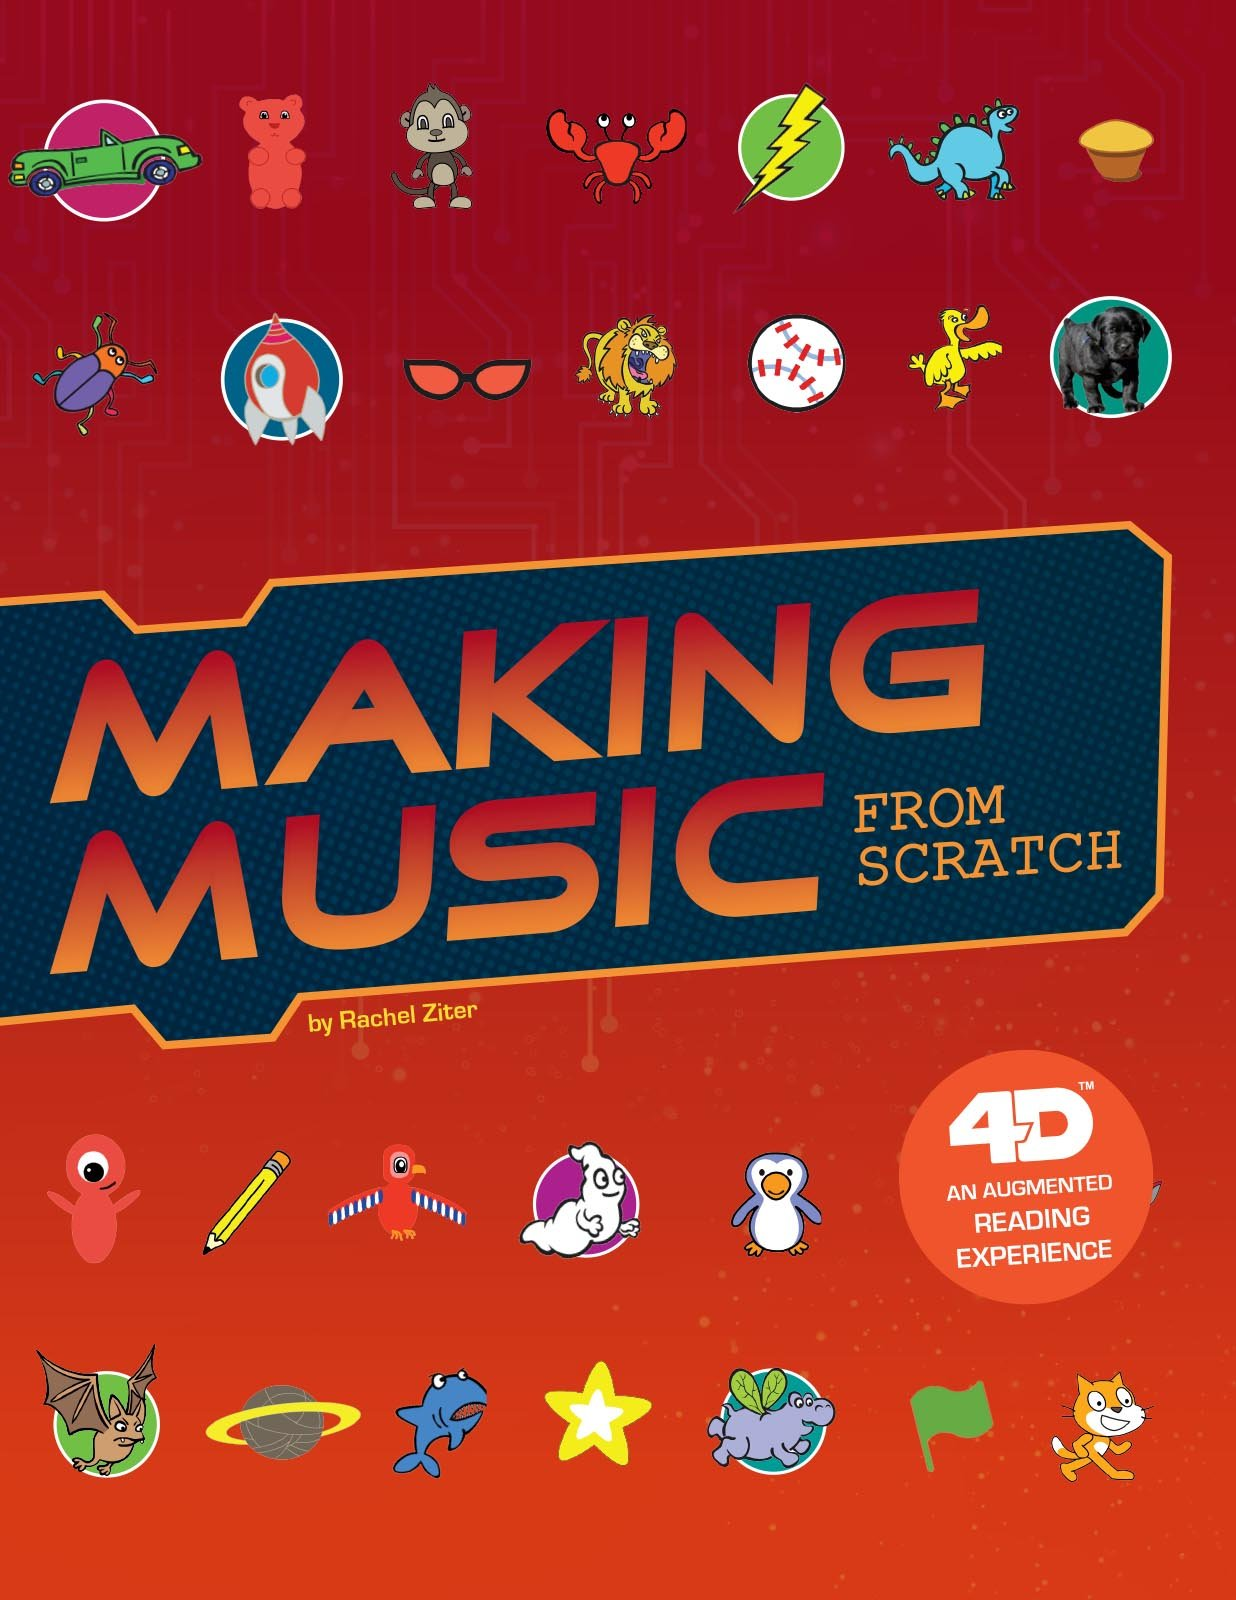 Making Music from Scratch: 4D An Augmented Reading Experience (Code It Yourself 4D) by Capstone Press